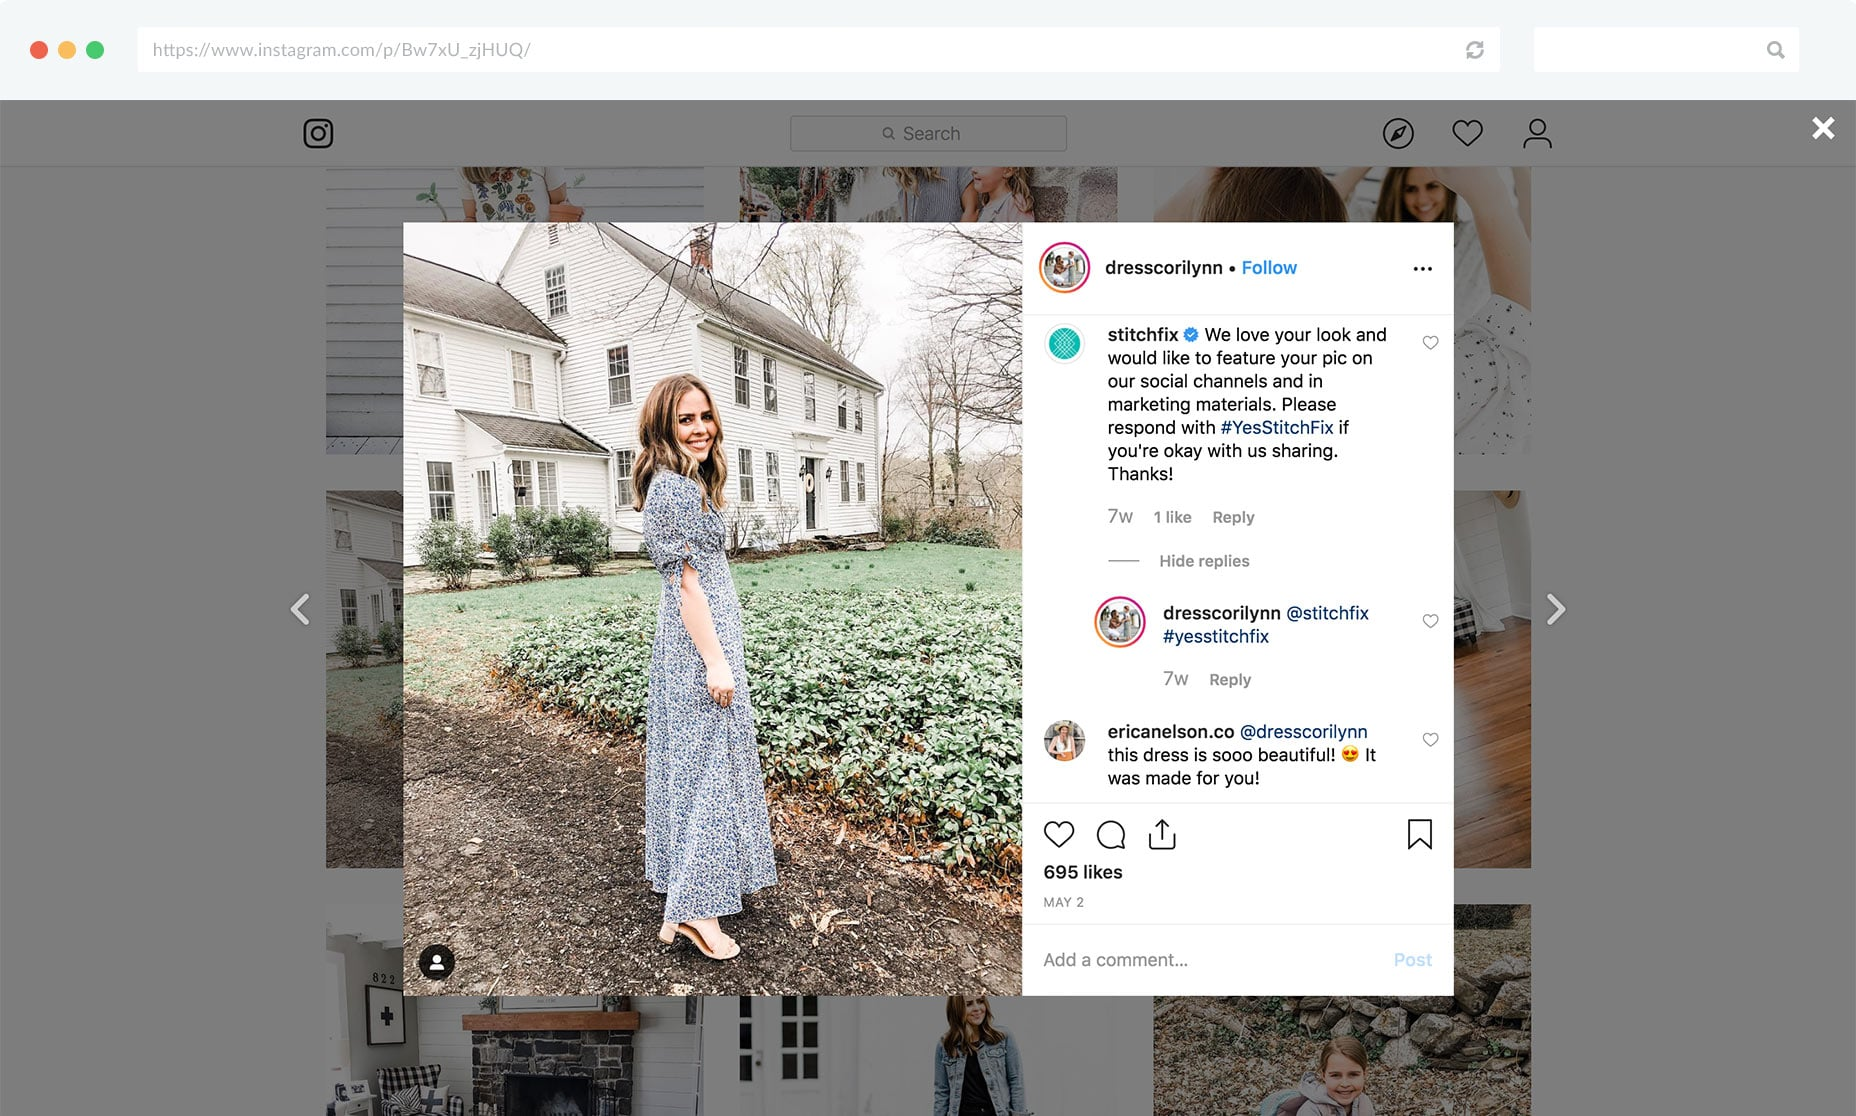 Ask customers if you can use their photos in Instagram comments